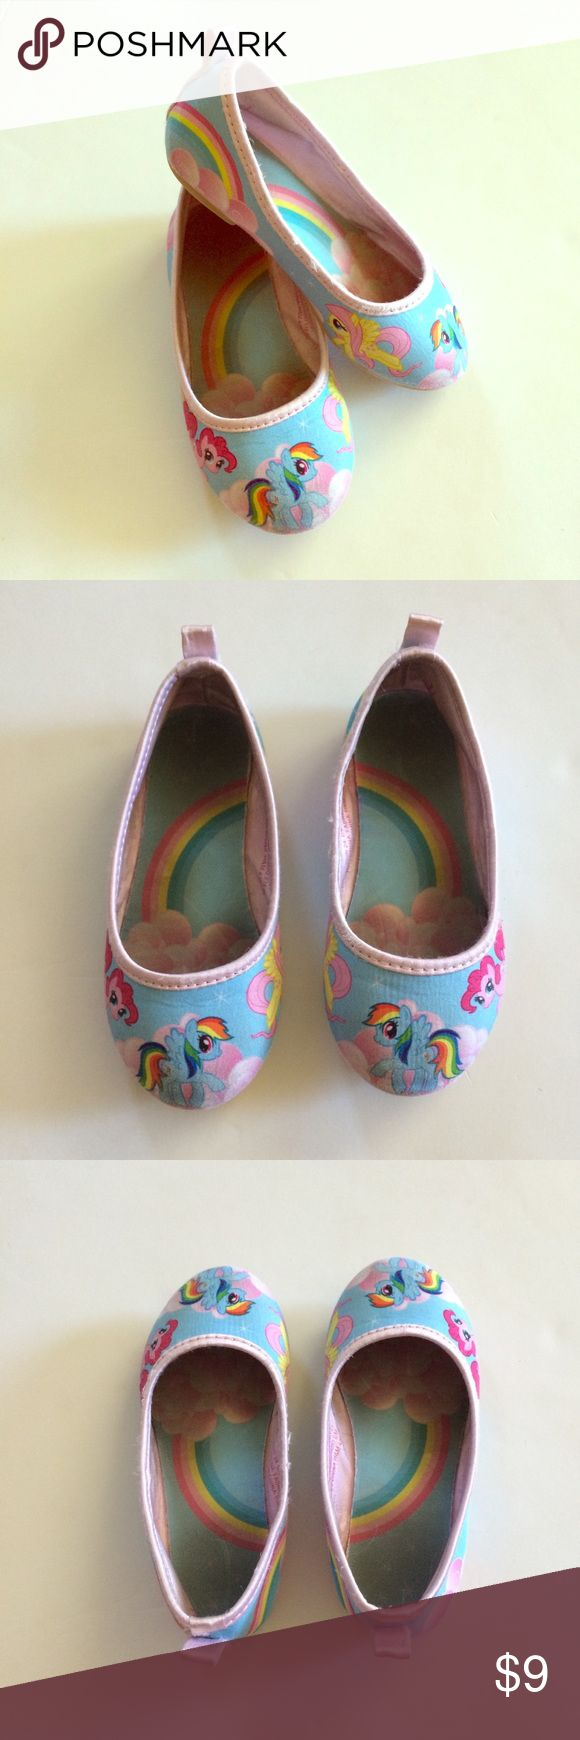 My Little Pony Flats My little loves these shoes! Lots of wear but still in good condition. No holes or huge flaws. Just the wear pictured in photos! Price reflects wear. H&M Shoes